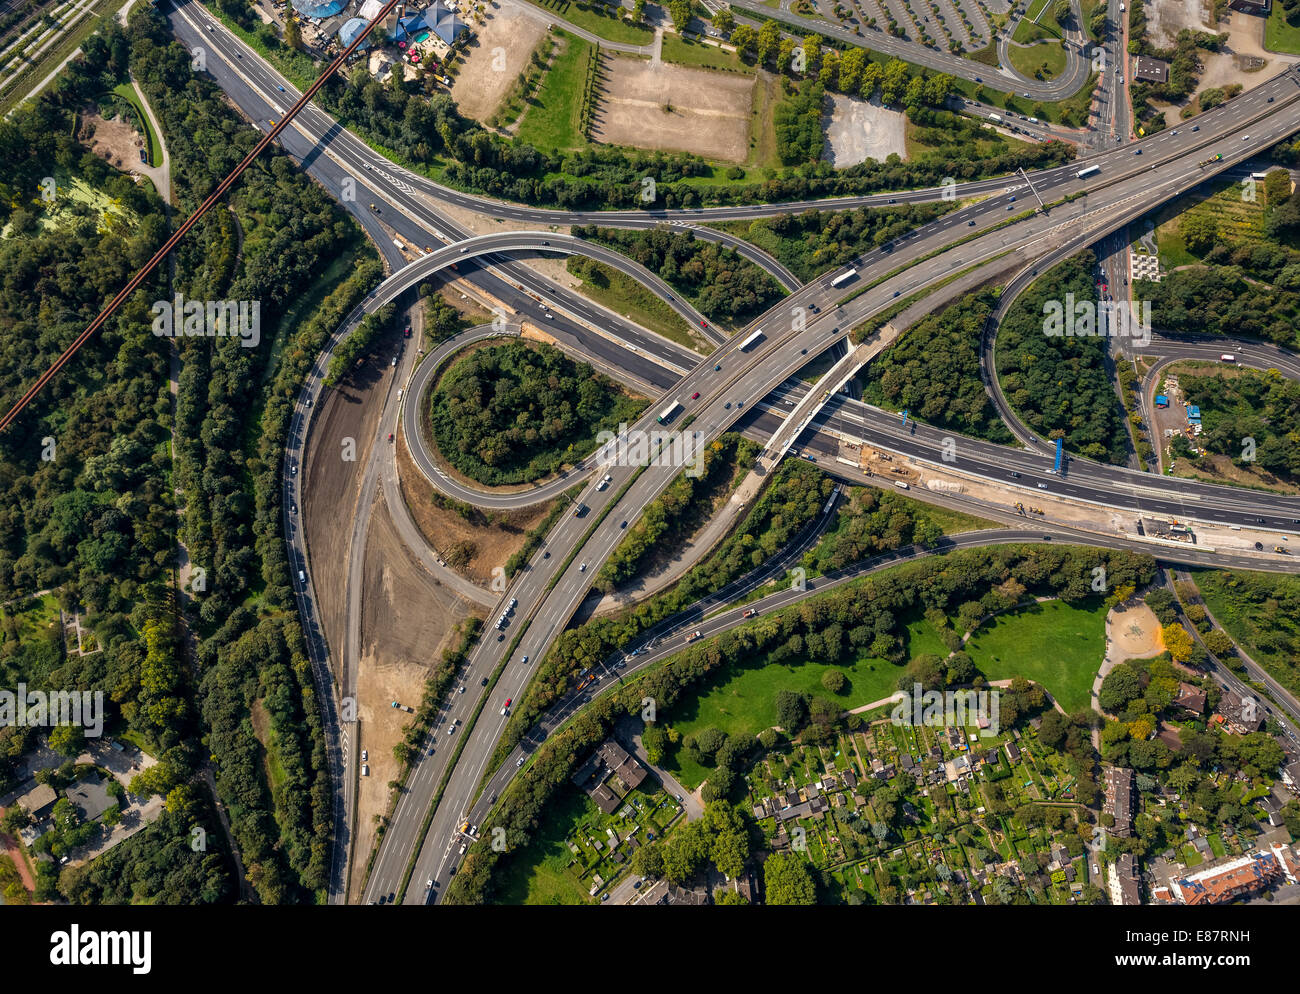 Aerial view, junction of motorways A59 and A42, extension and rebuilding of the A59 motorway, Duisburg, Ruhr Area - Stock Image